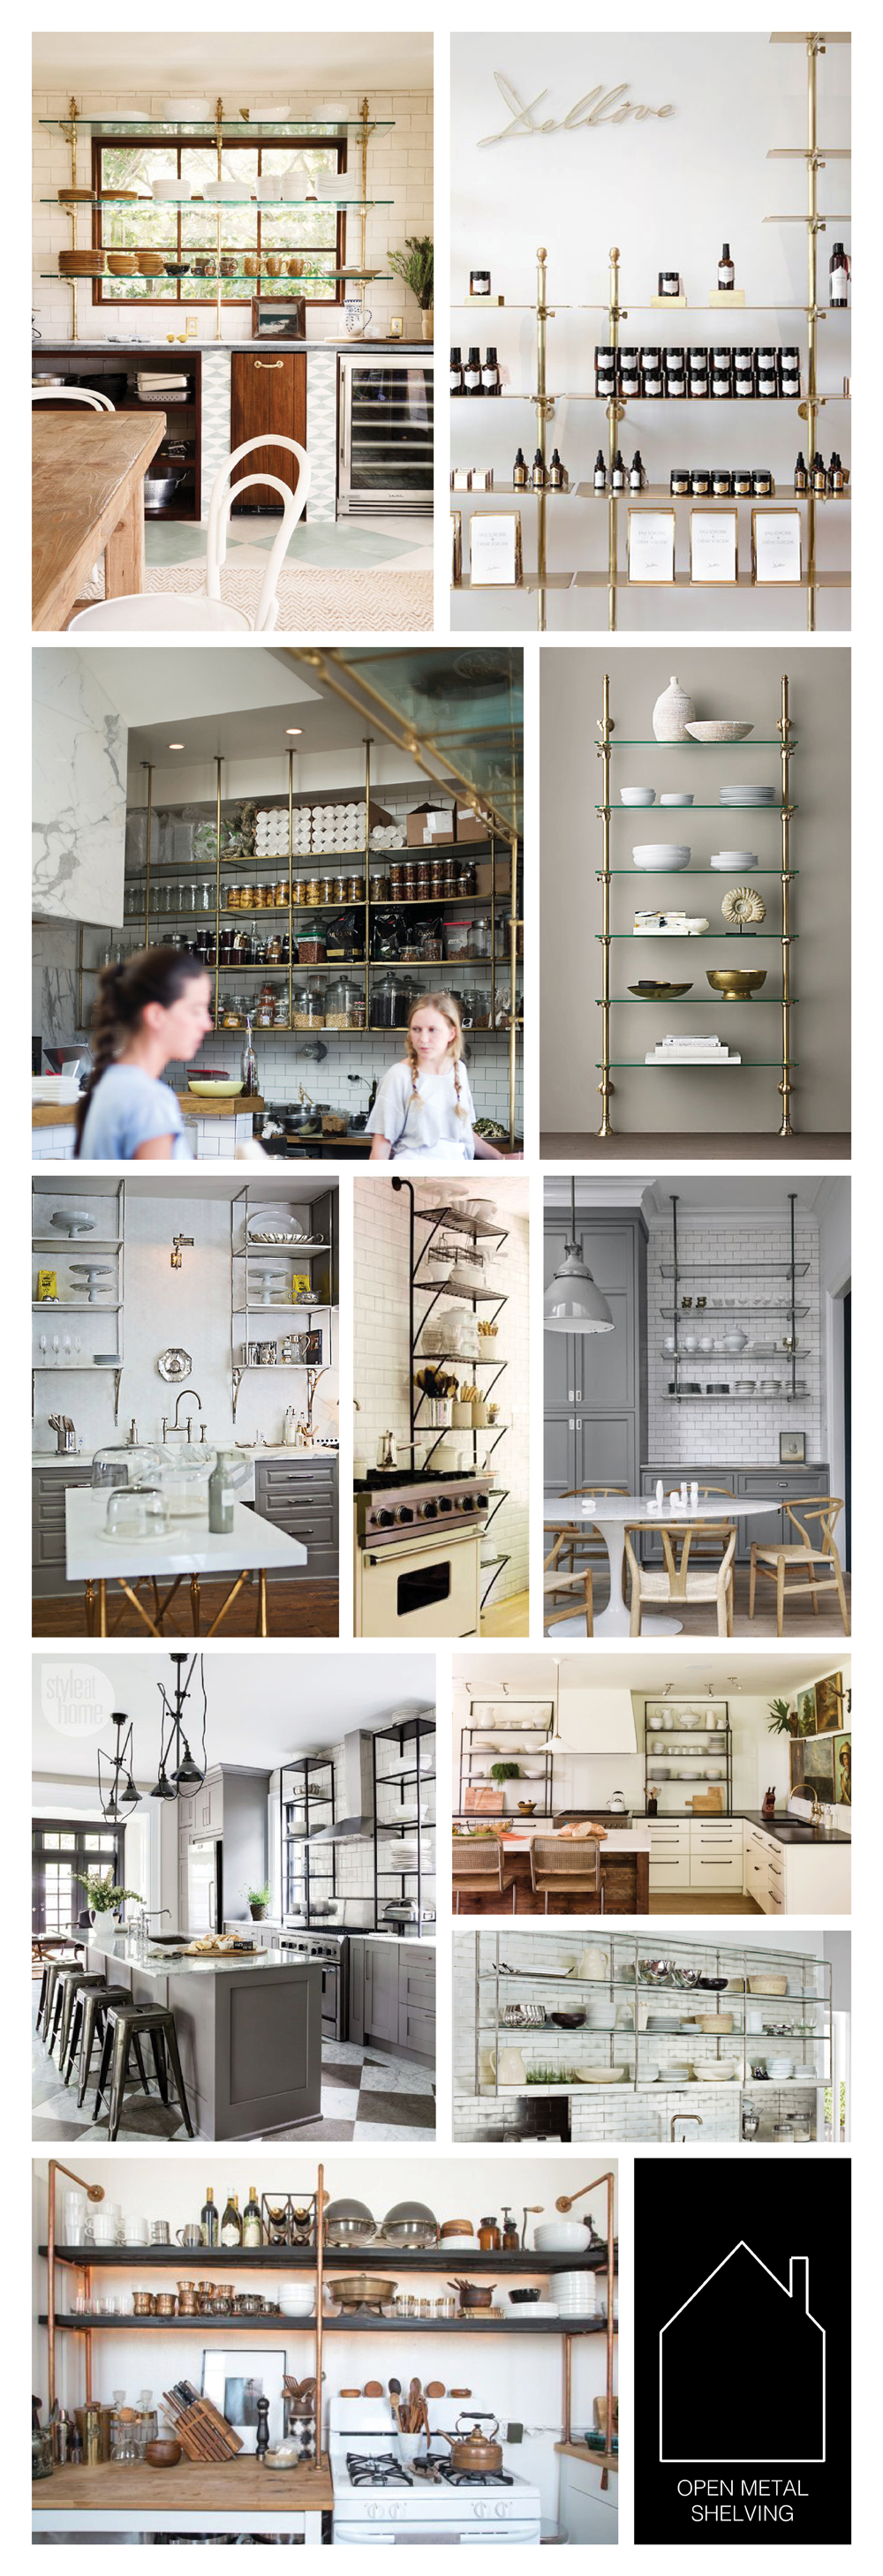 from top left - Hawaiian vacation home designed by  Michelle R. Smith  via  DOMAINE  - retail brass shelving via source unknown - commercial brass shelving via  DISC JOURNAL  - 1930s French Bistro Shelving via  Restoration Hardware  - LA home of Gwyneth Paltrow via  Popsugar  - full height iron shelving via  COCO COZY  - home of  Susan Greenleaf  via  Lonny  - industrial kitchen design by Ingrid  Oomen  via  Style At Home  - home of  Lauren Liess  - 2012 Kitchen of the Year via  House Beautiful  - DIY copper shelving via  Apartment Therapy